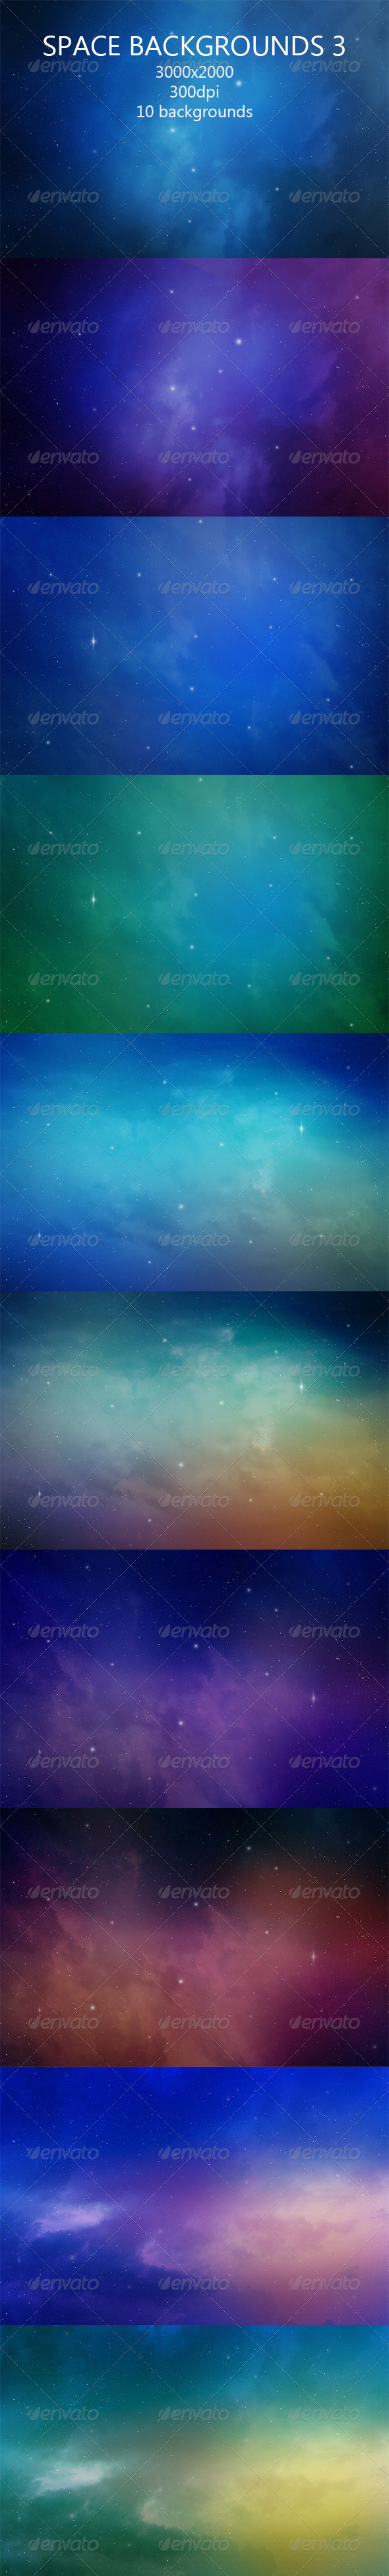 GraphicRiver Space Backgrounds 3 8167216